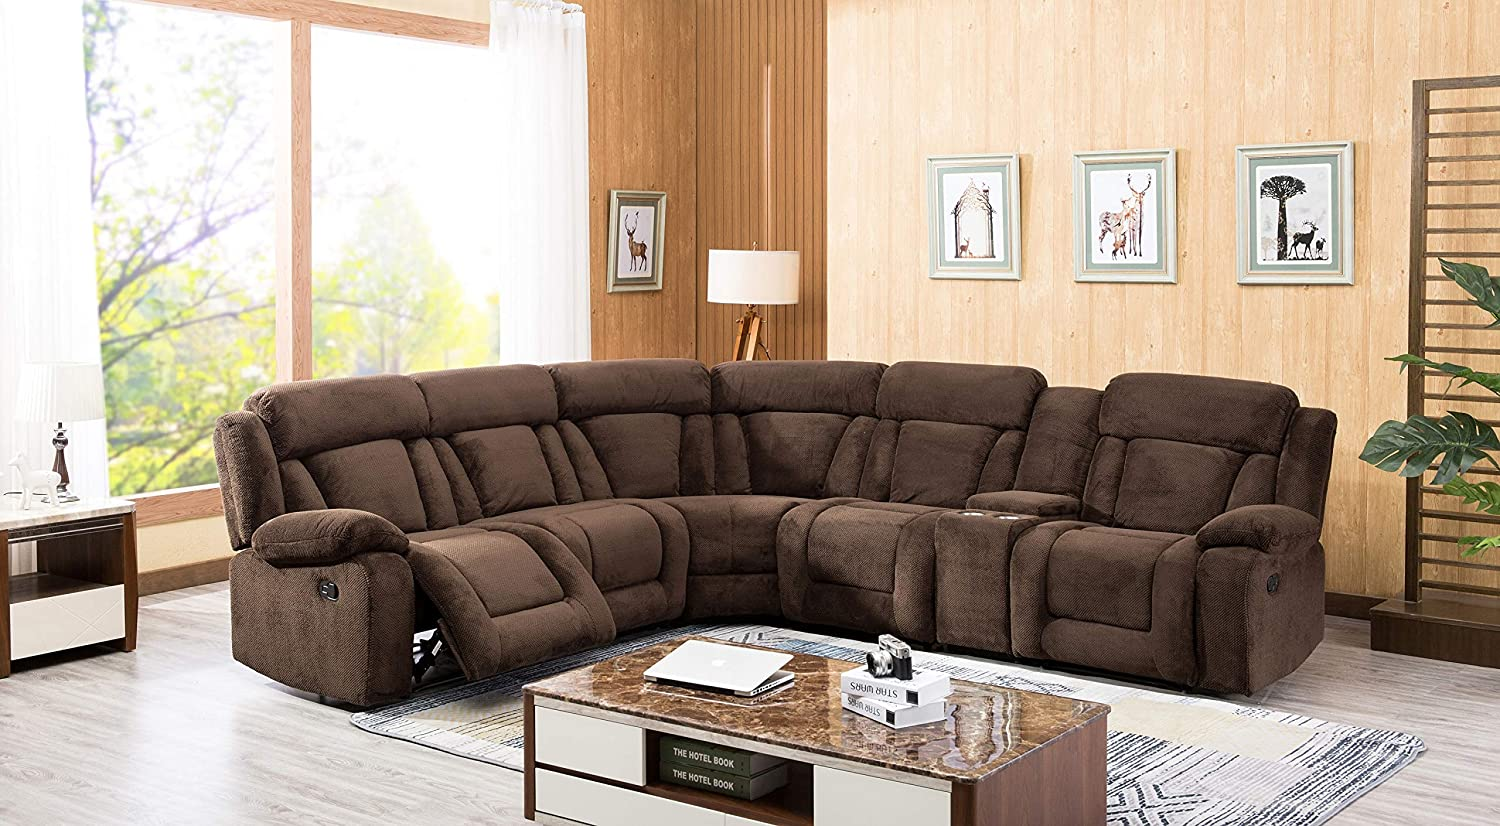 Amazon.com: Esofastore Casual Classic Look Sectional Sofa ...